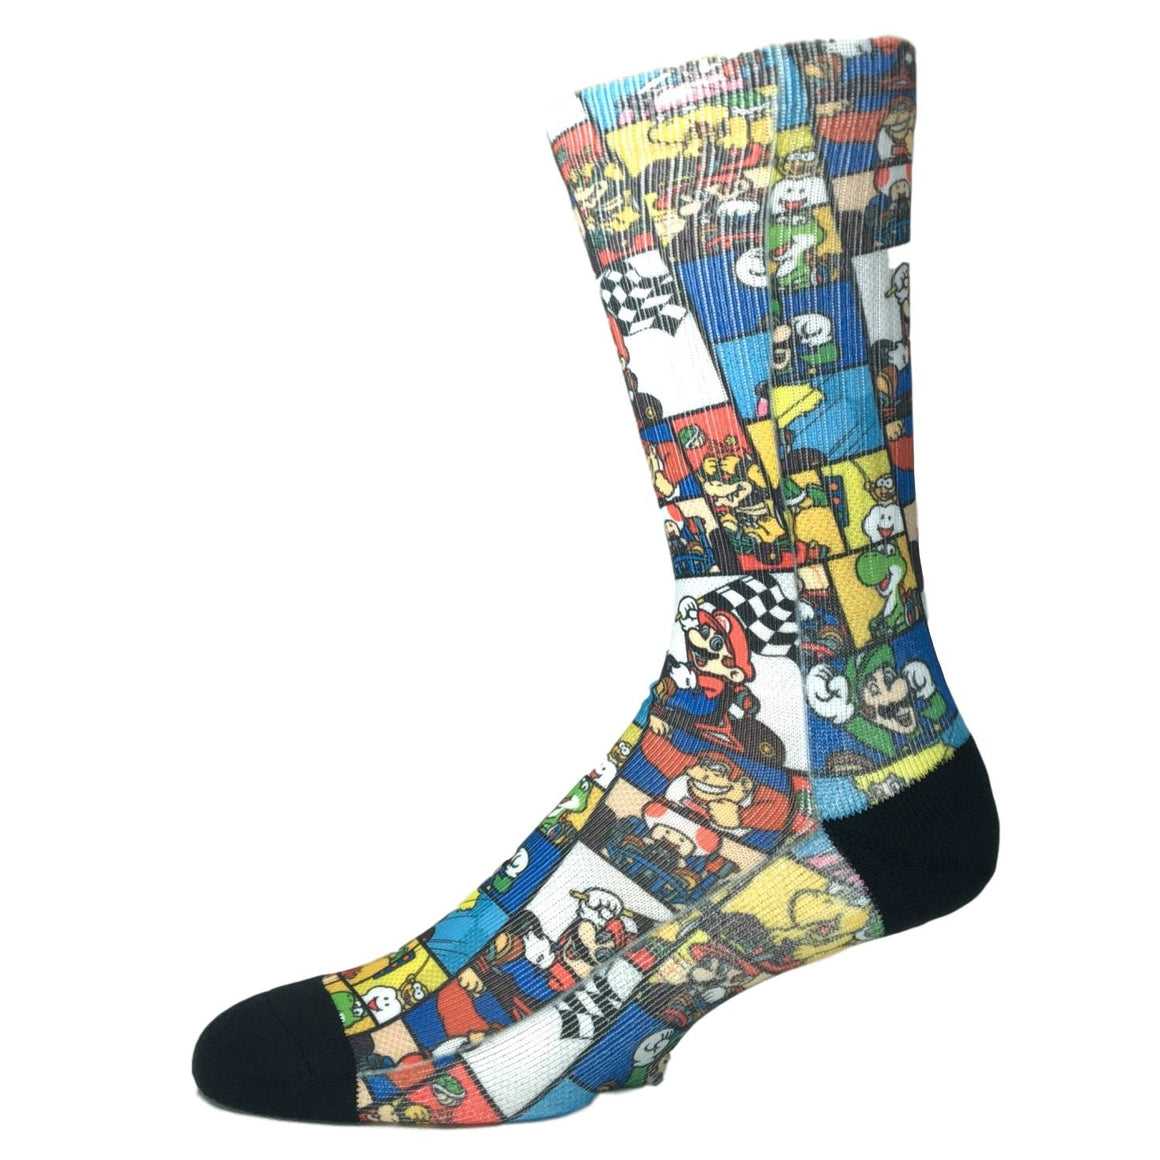 Socks - Nintendo SNES Mario Kart Collage Printed Socks